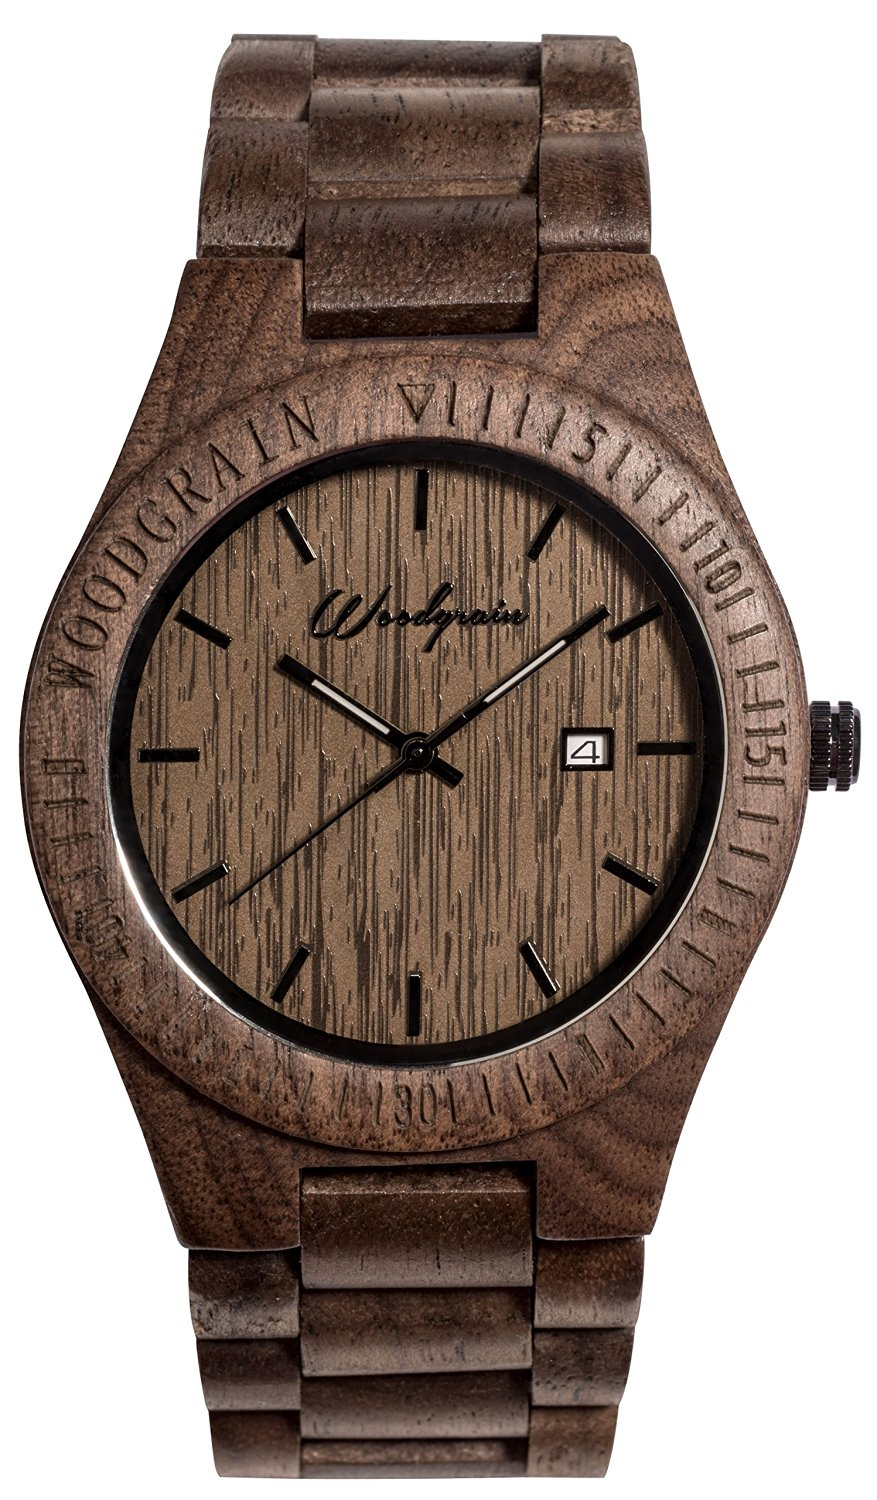 Wood Watches by JORD – Handmade Watches Made of Wood